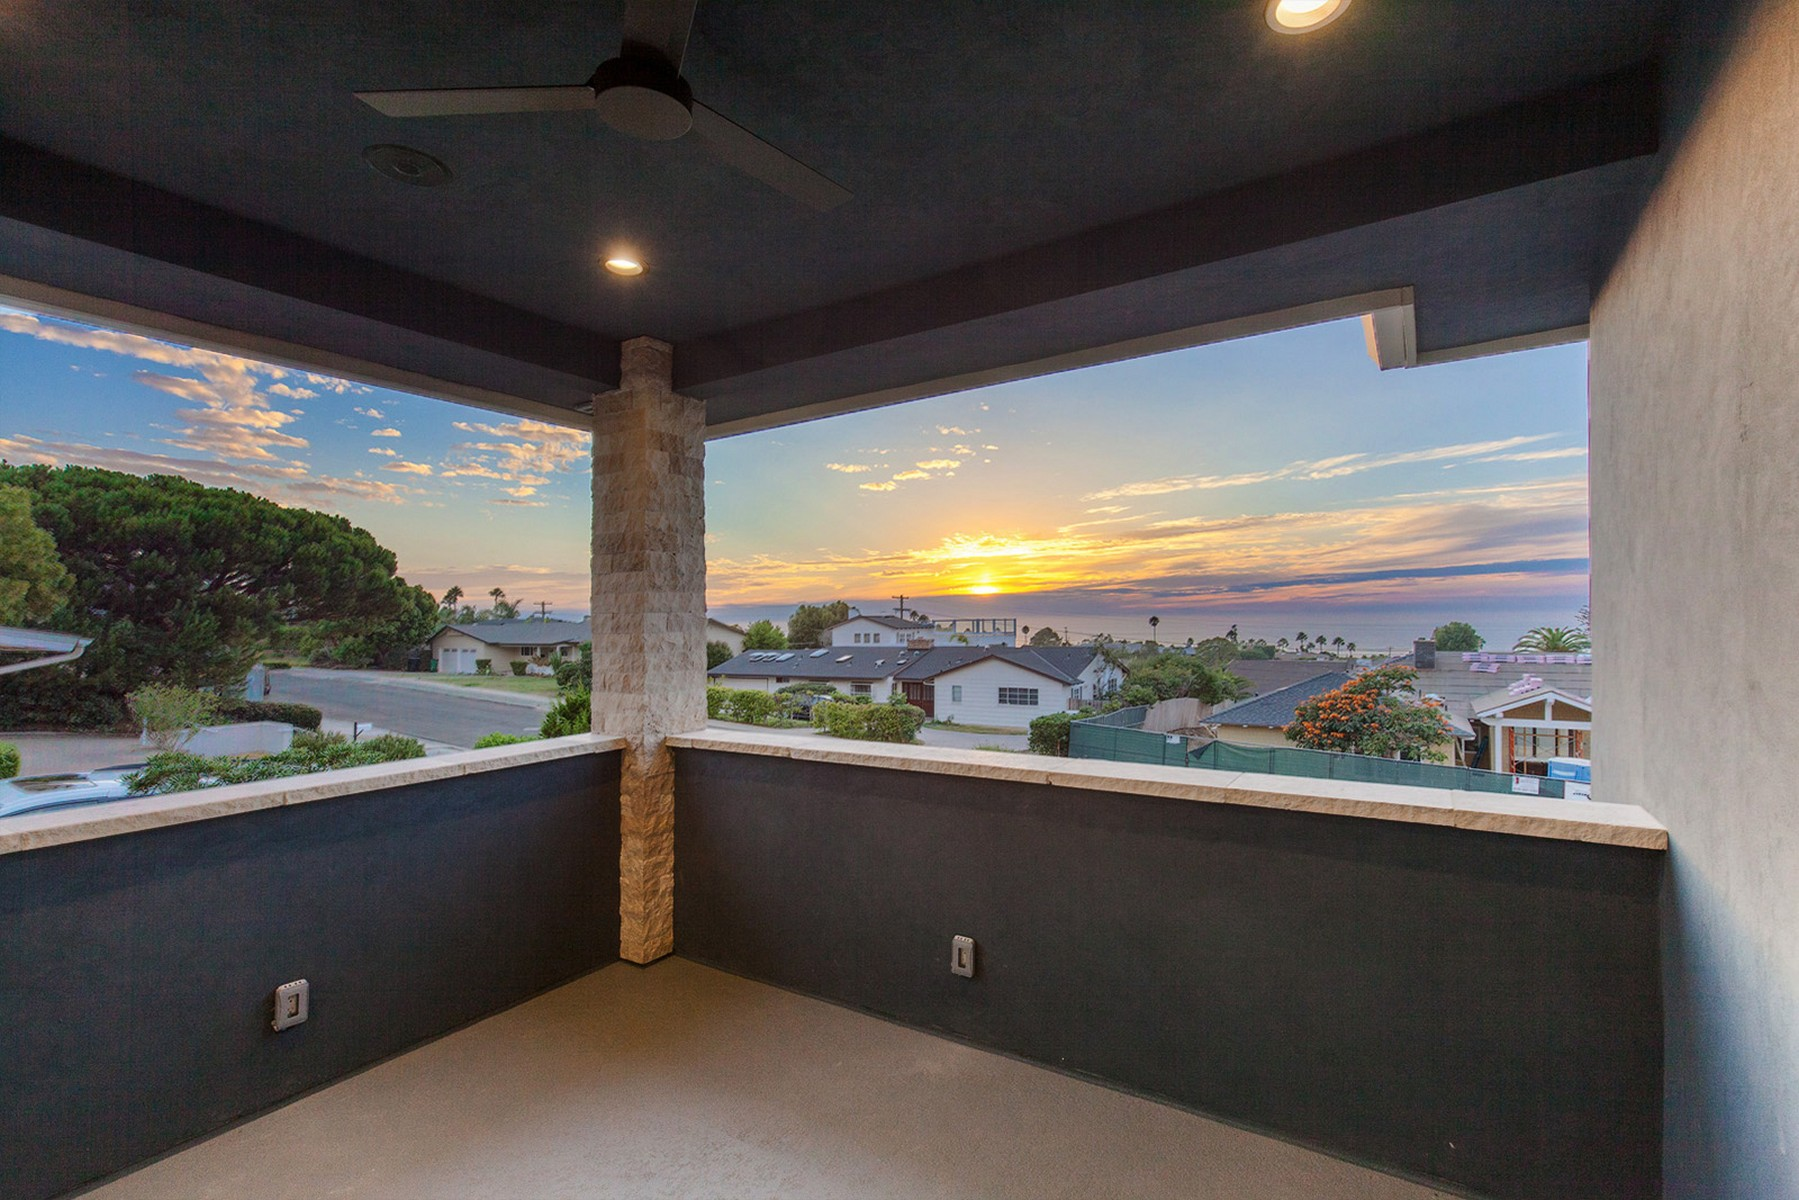 Additional photo for property listing at 6645 Avenida De Las Pescas  La Jolla, Californie 92037 États-Unis